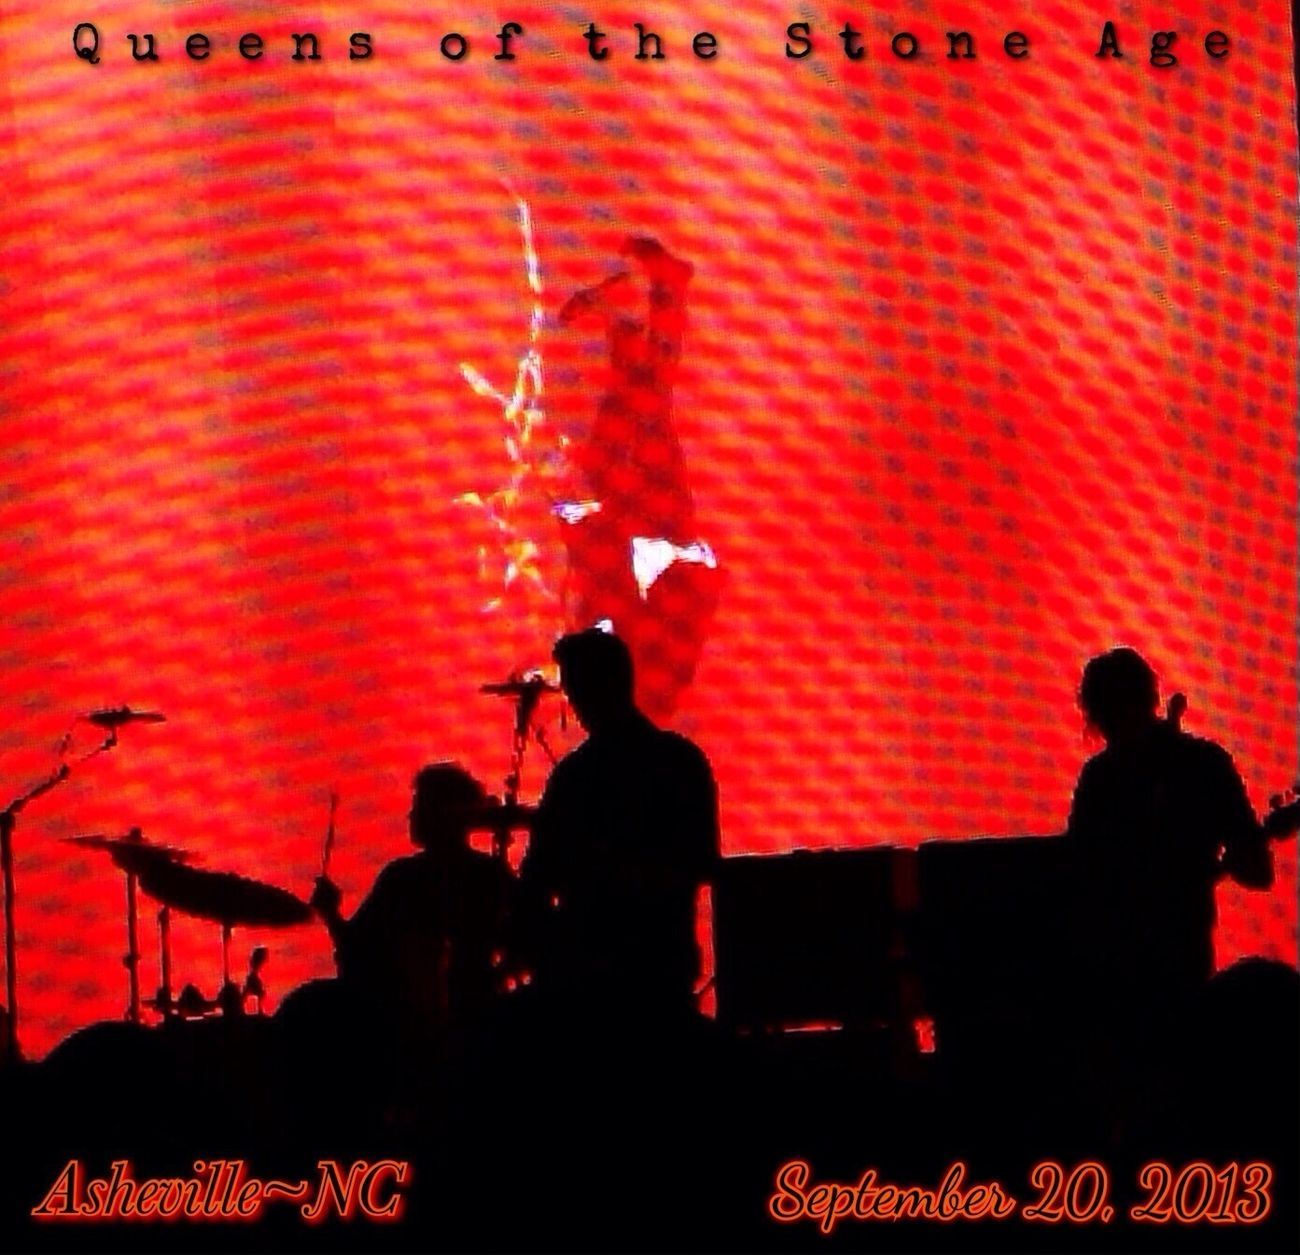 QOTSA Asheville, NC 9/20/13 Concert Qotsa Queens Of The Stone Age Awesome Performance